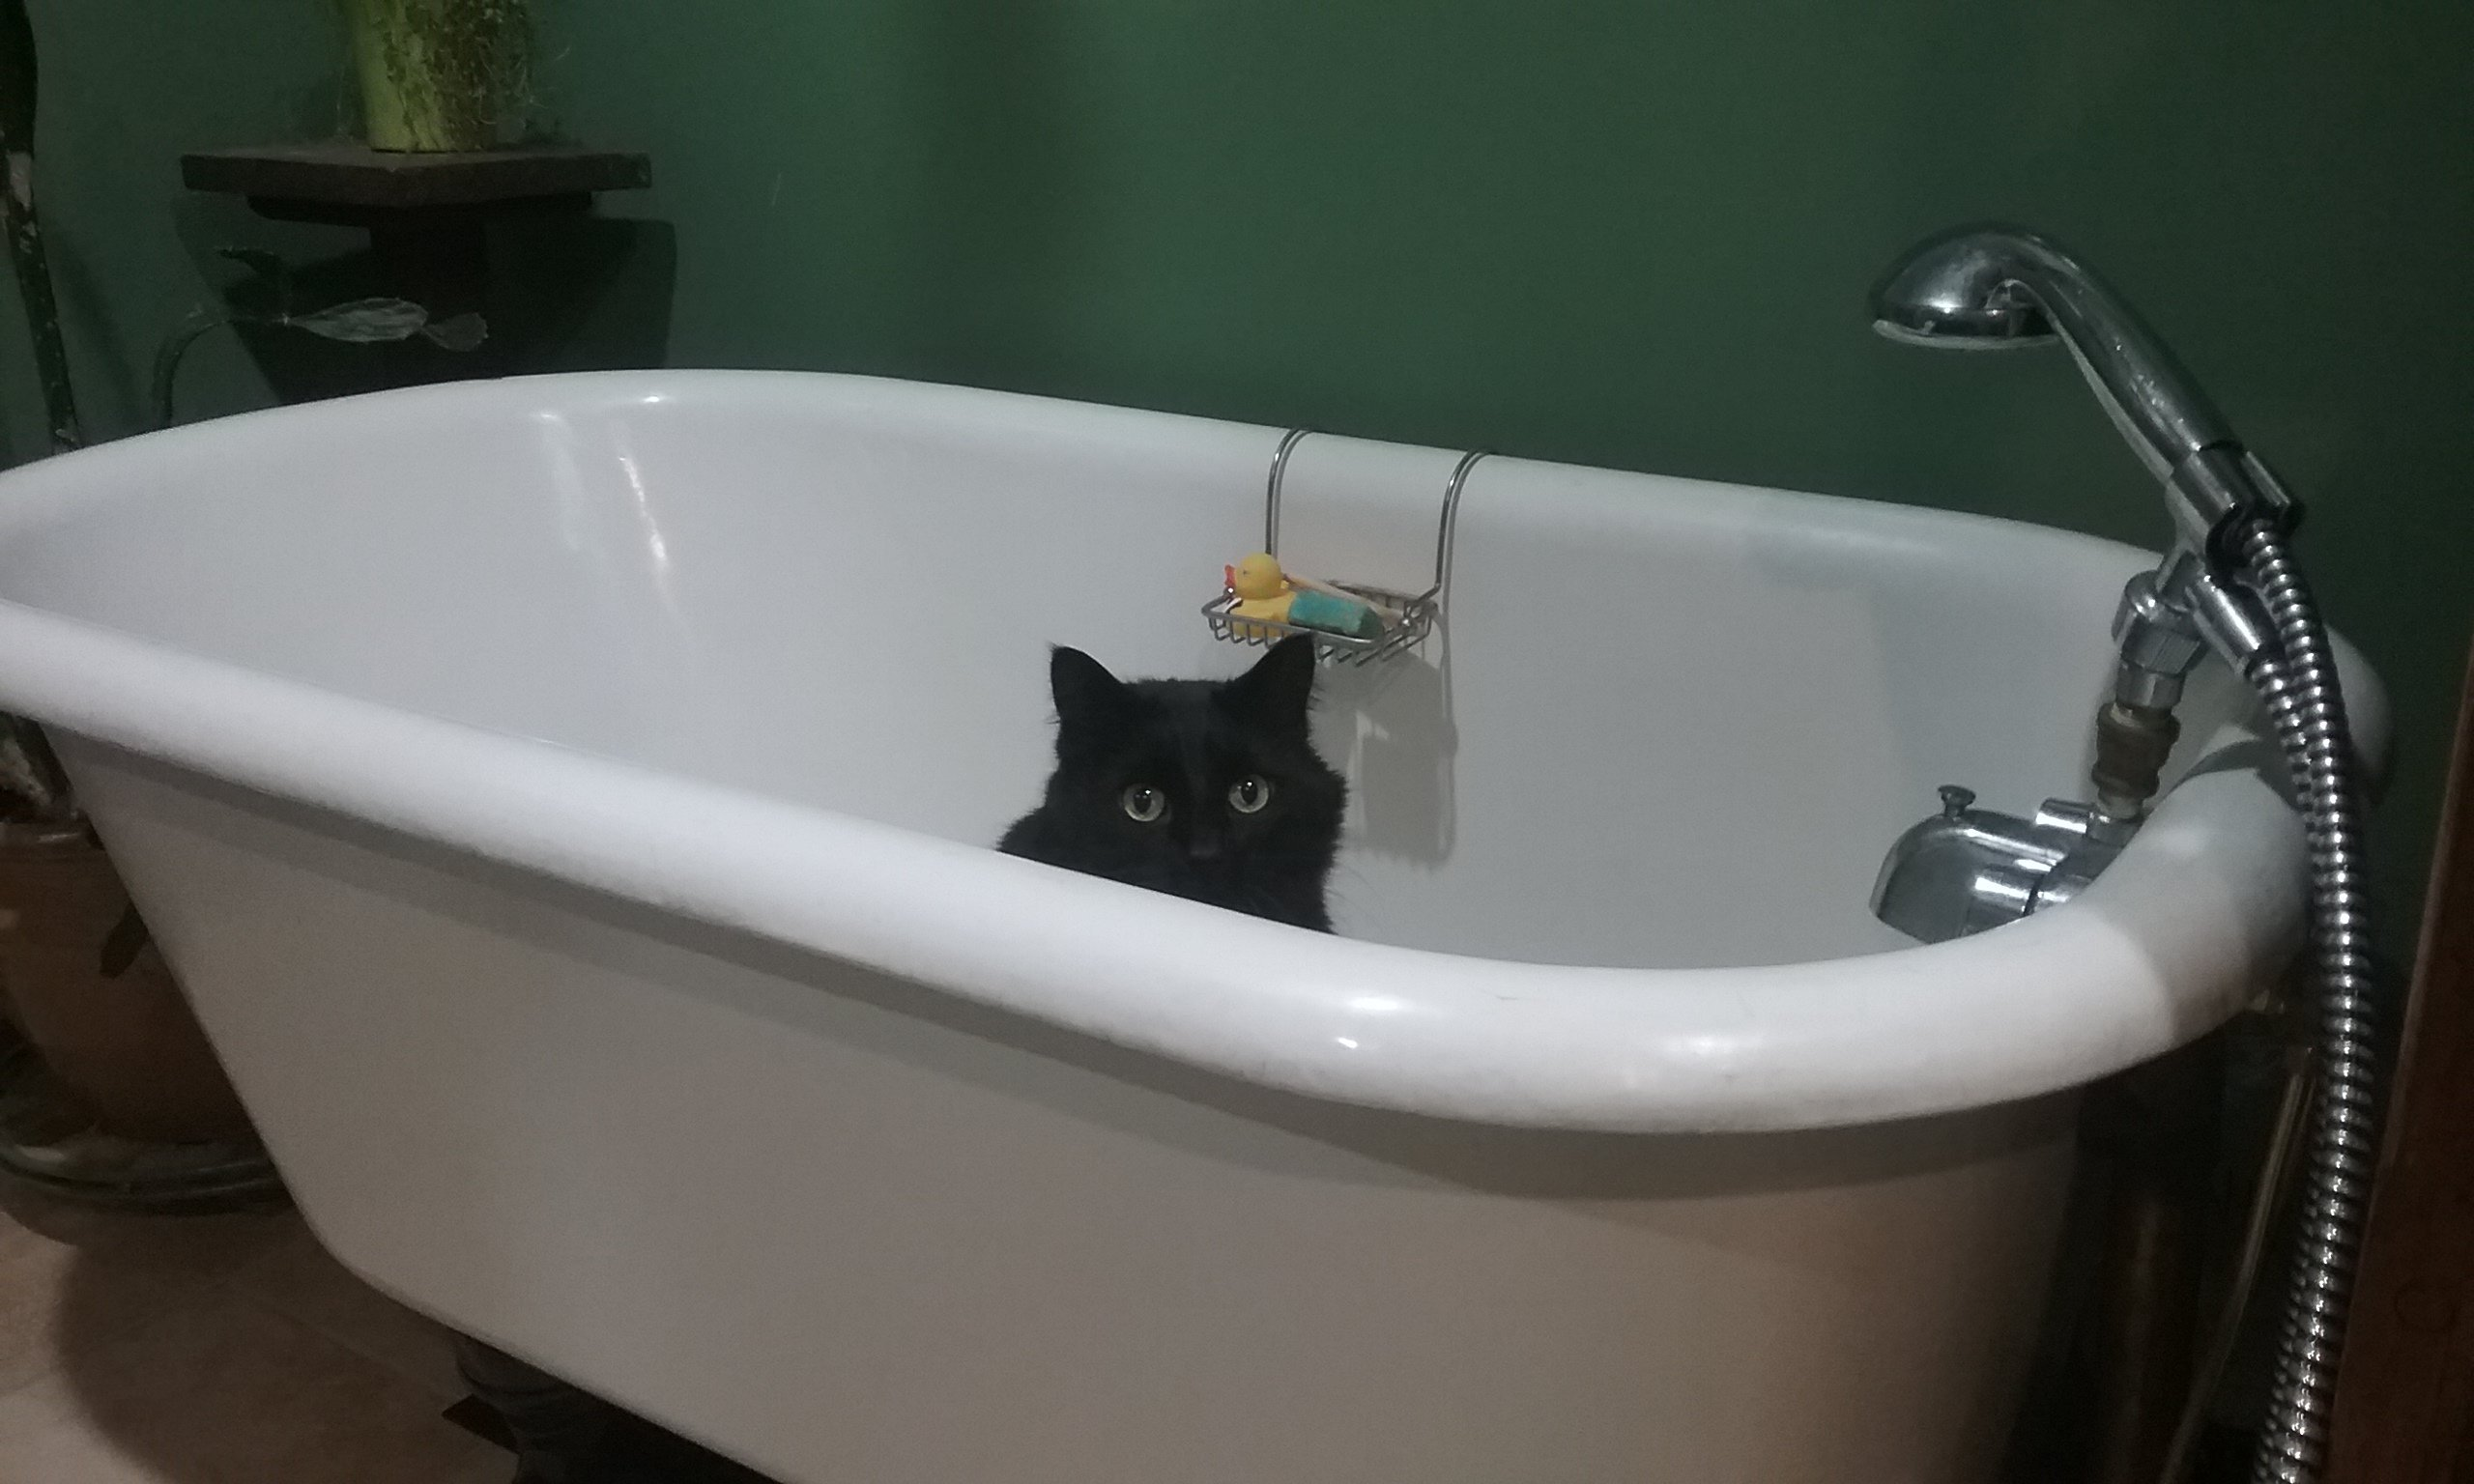 Cat Got Your Tub?